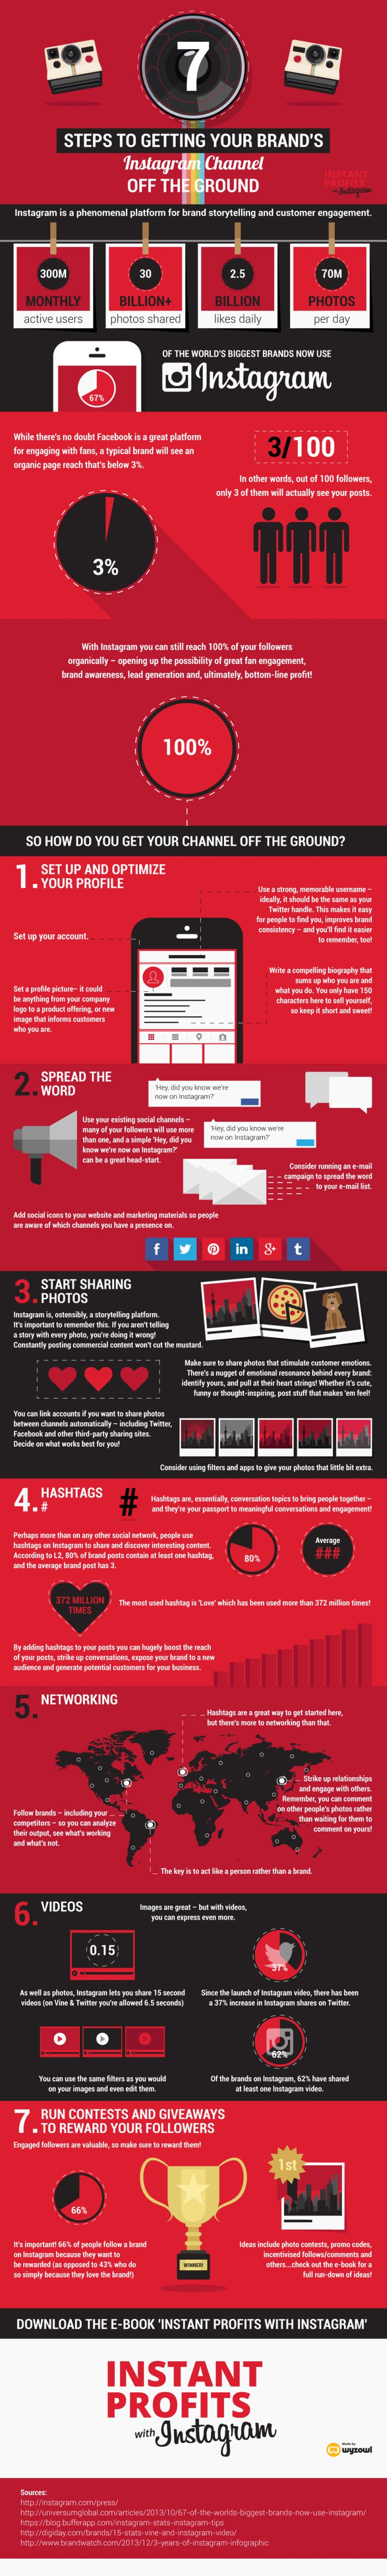 7 Steps to Getting your brand's Instagram Channel off the Ground #Infographic | #SocialMedia